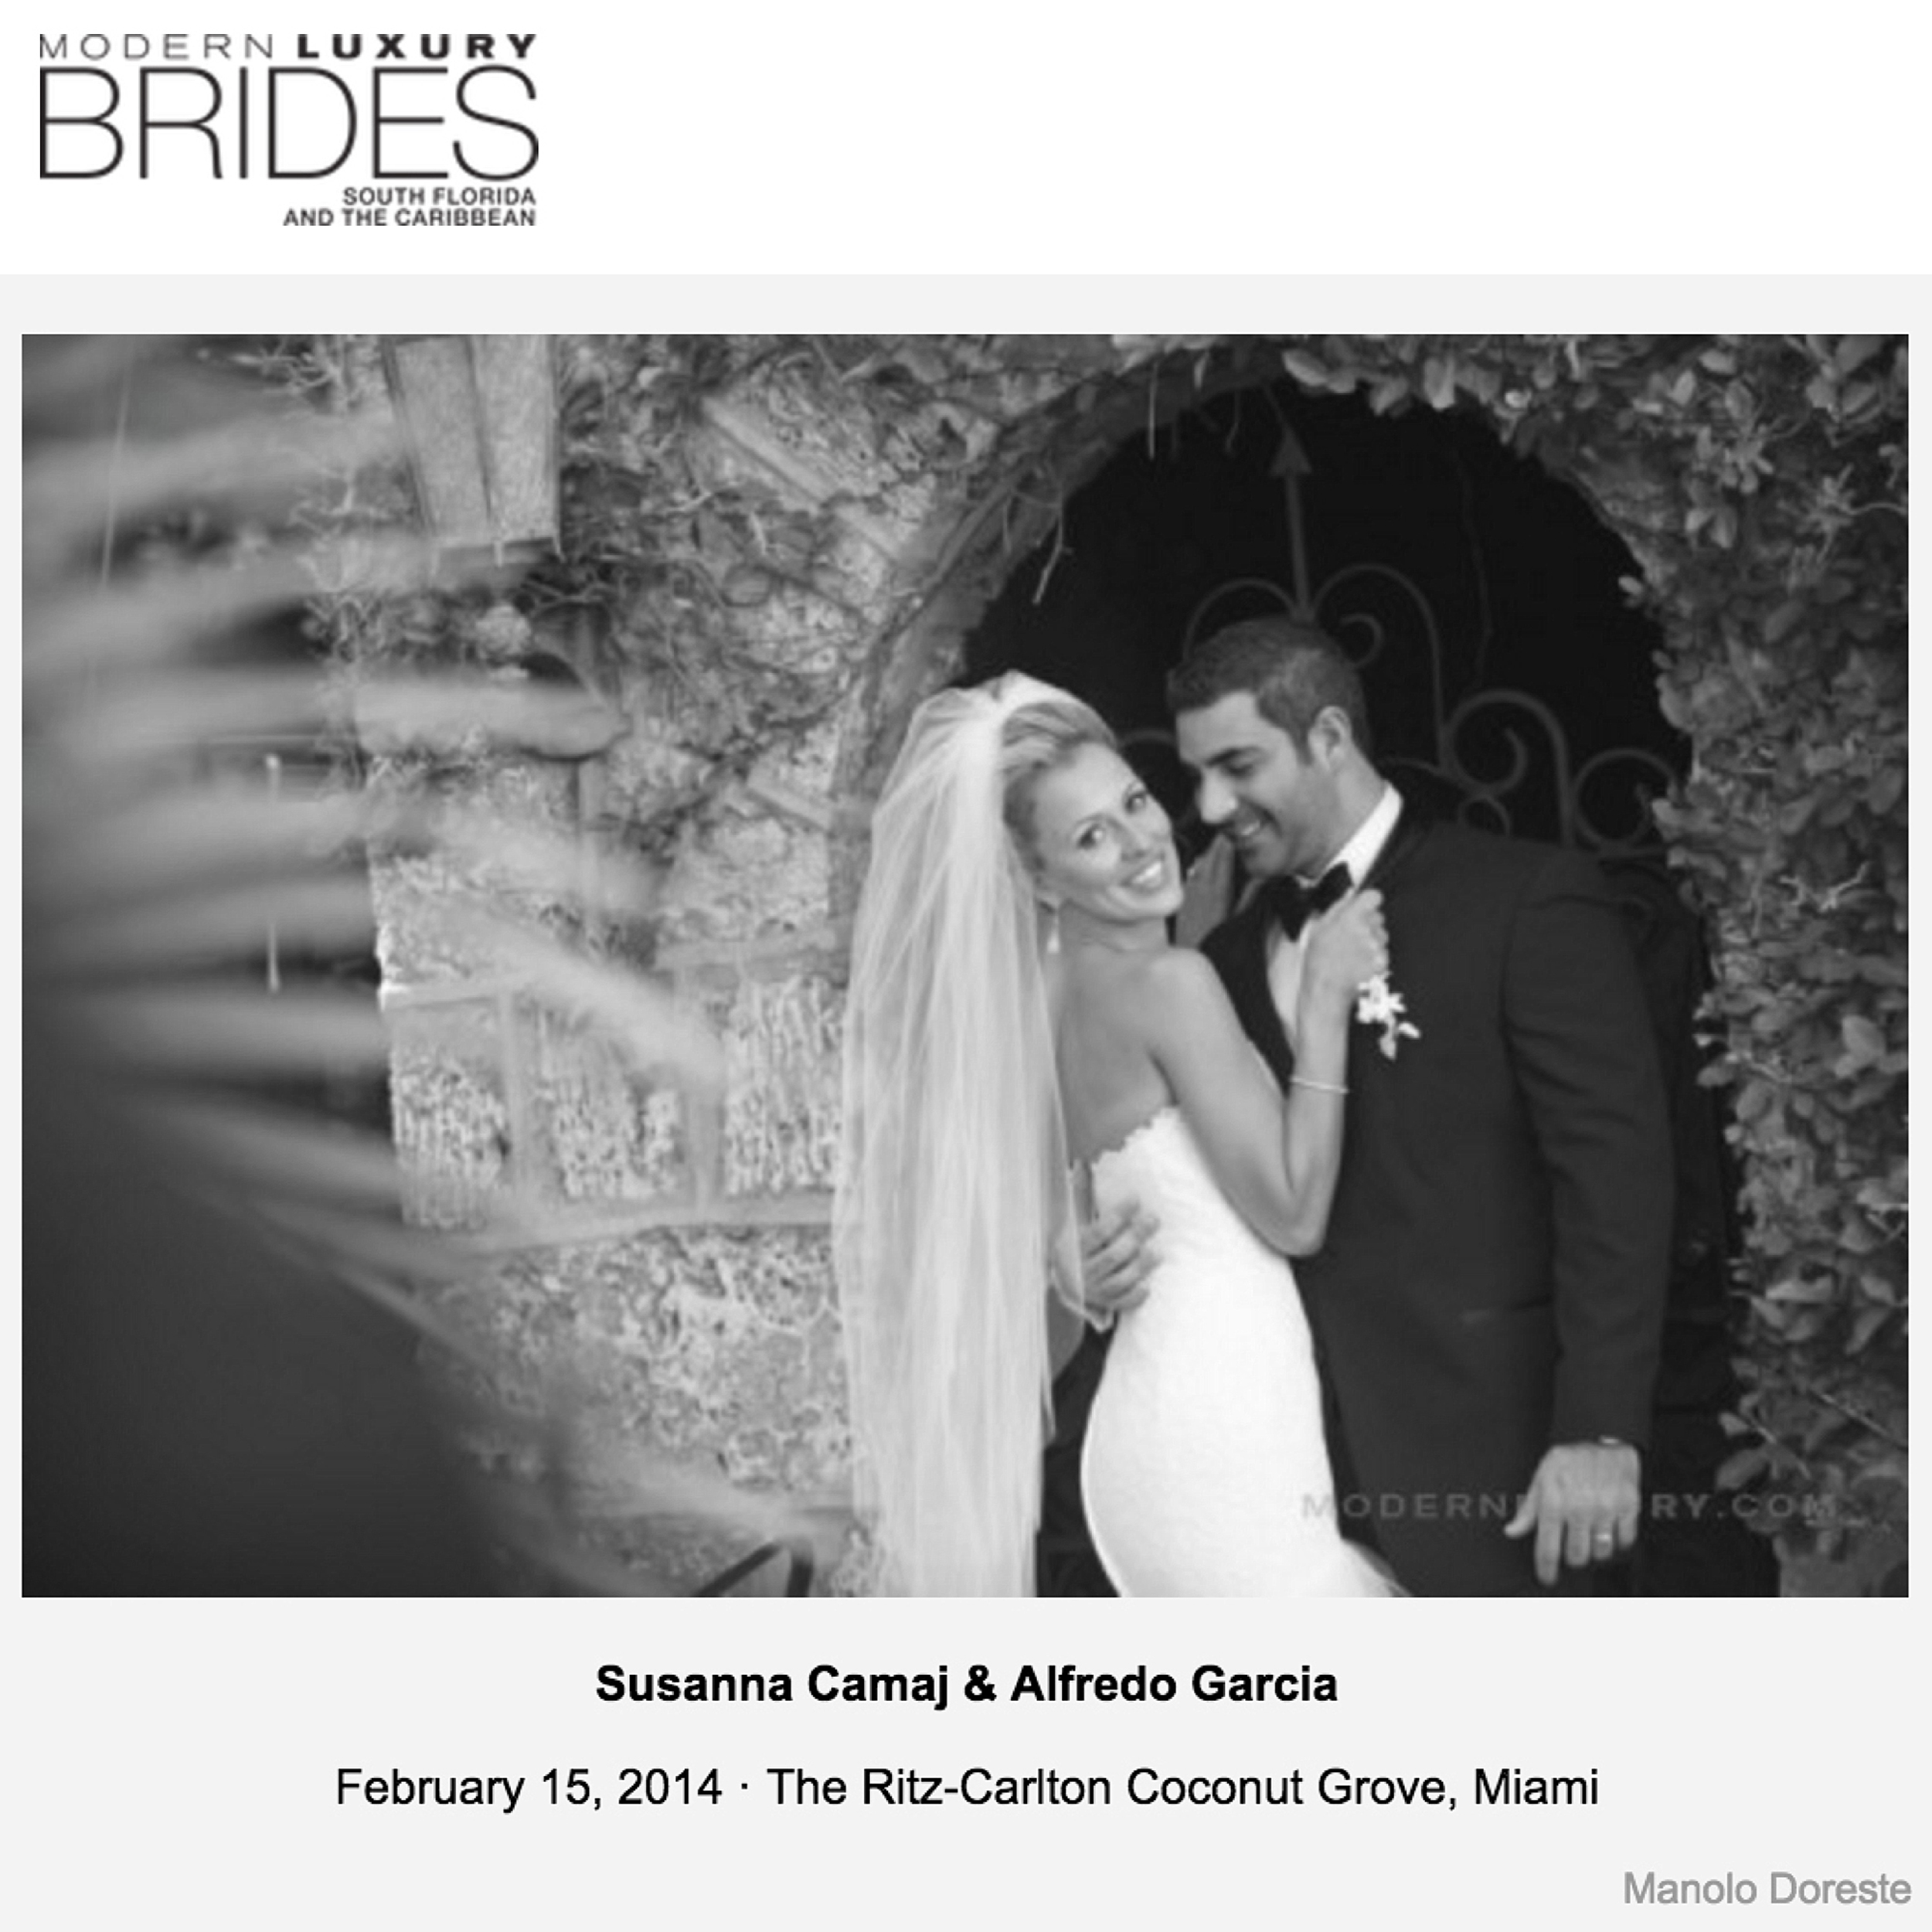 Modern Luxury Brides | South Florida and the Caribbean